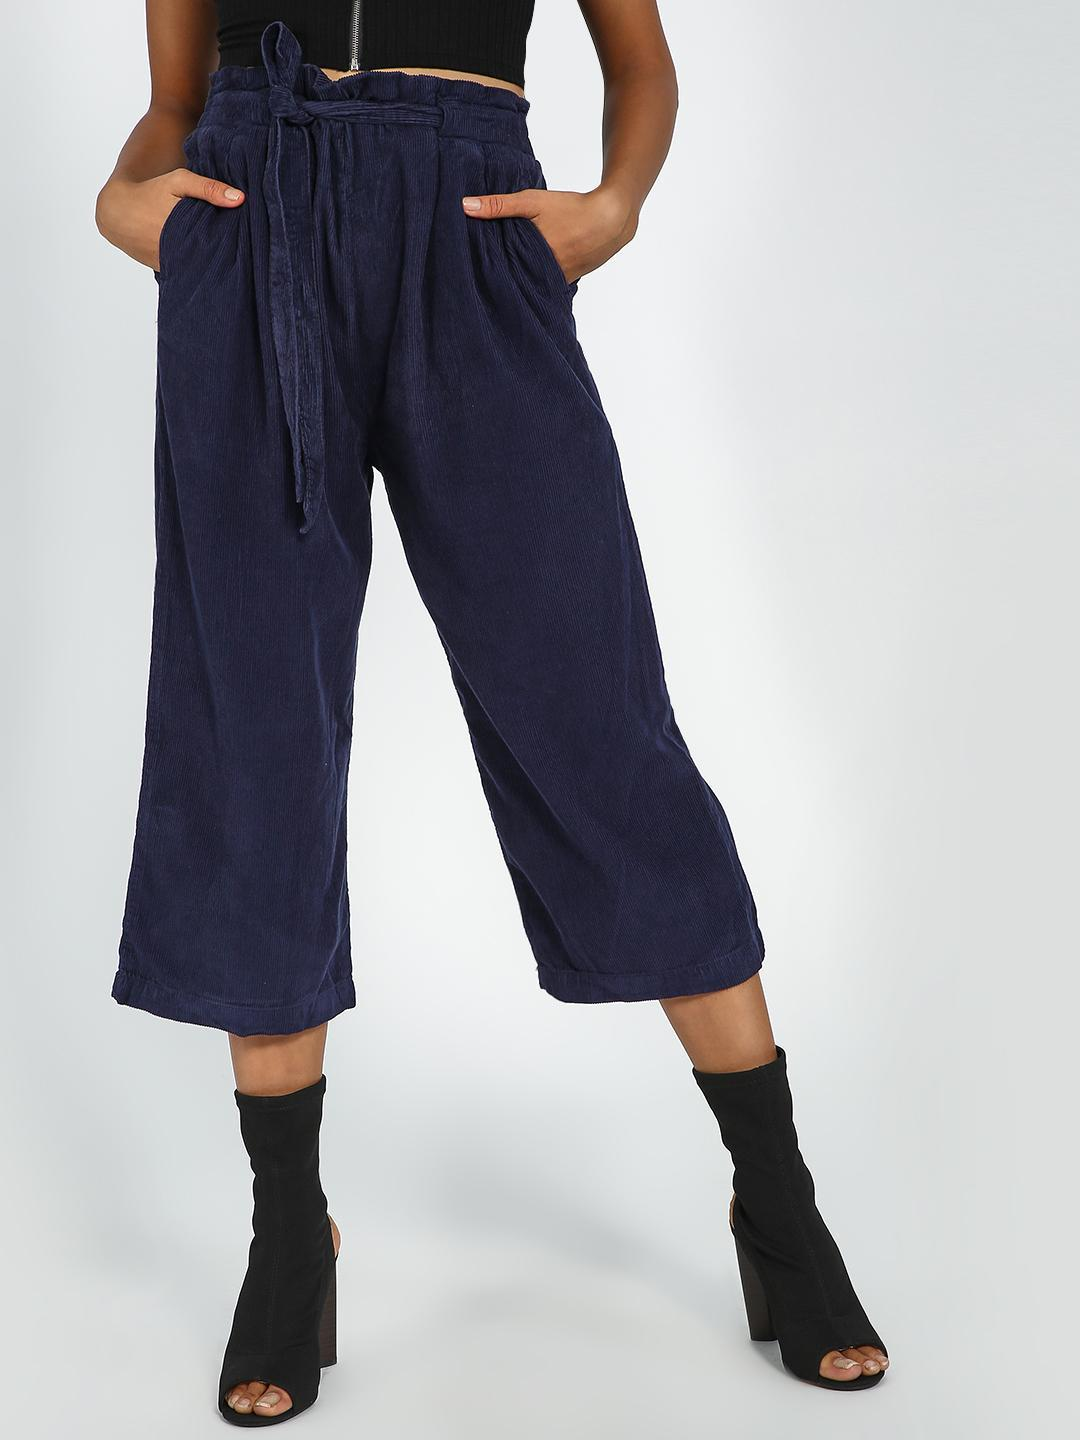 Blue Saint Navy Navy Blue Corduroy Belted Trousers 1